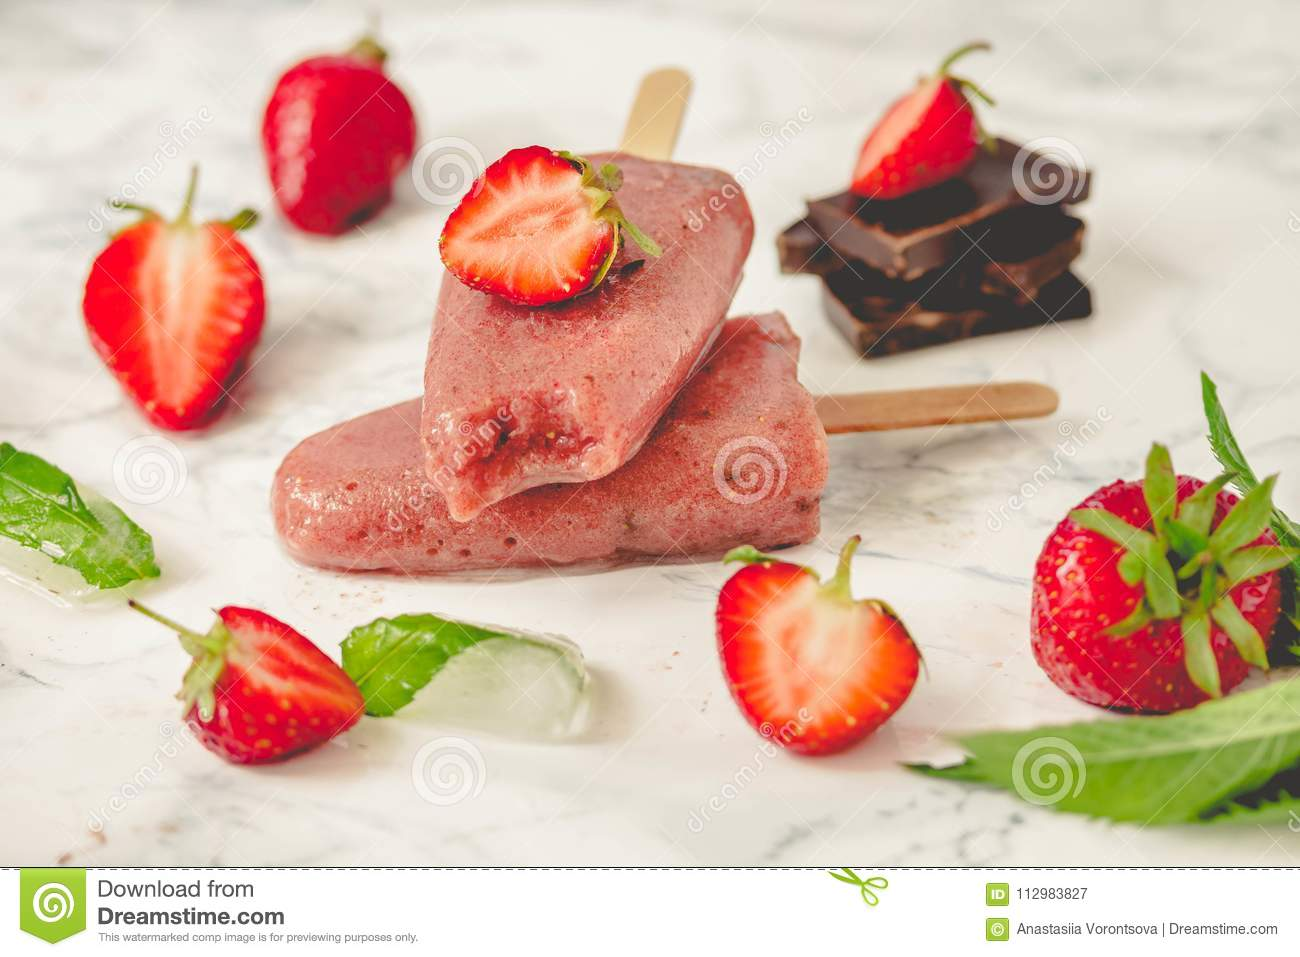 Strawberry ice cream with a banana and chocolate on a stick. Sum